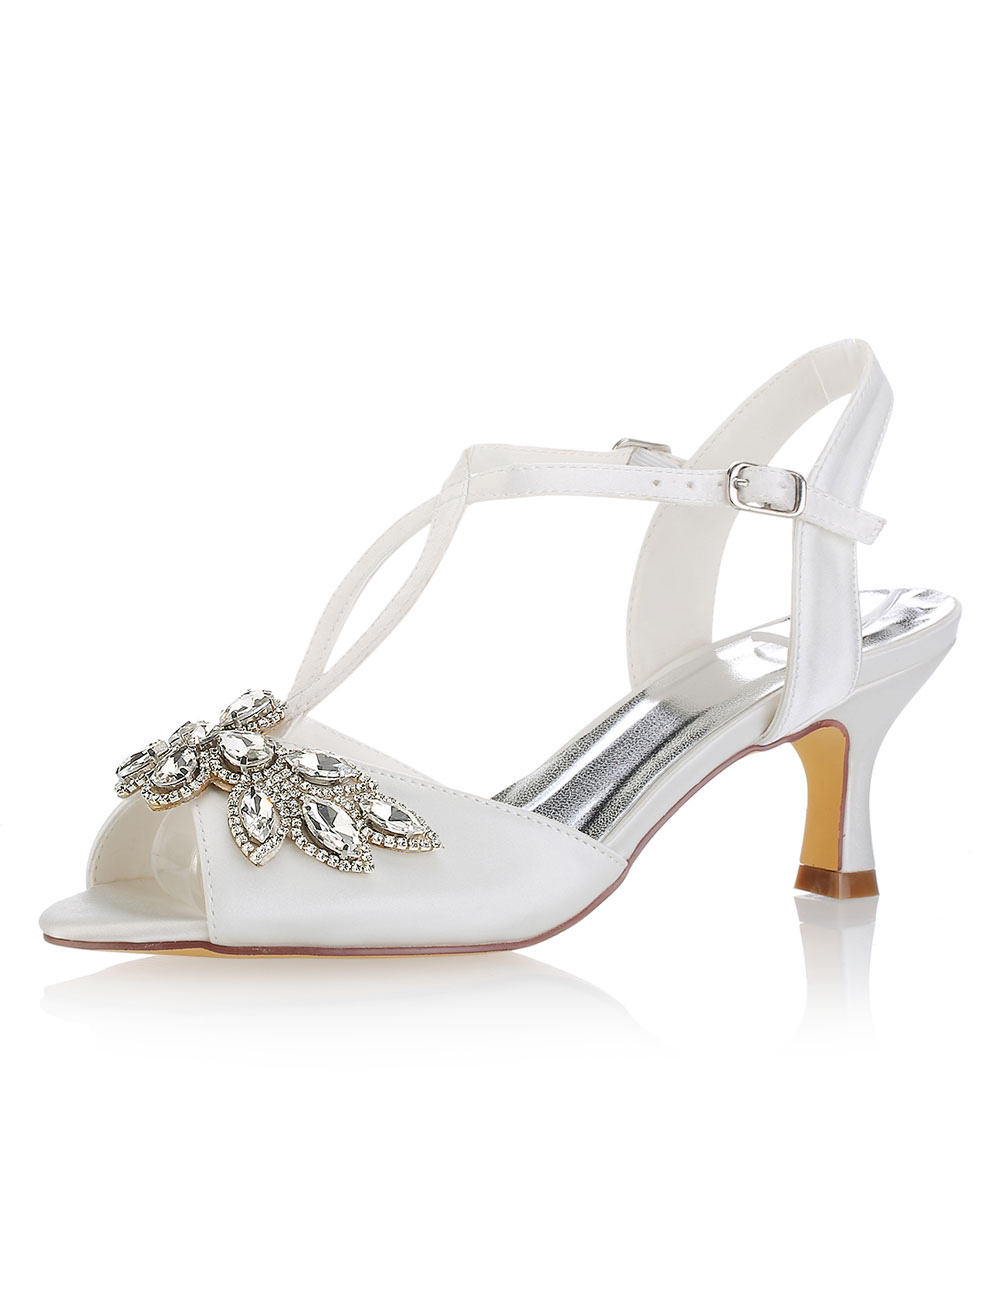 Buy Ivory Wedding Shoes Peep Toe Rhinestones Kitten Heel Bridal Shoes Women Shoes for $55.79 in Milanoo store